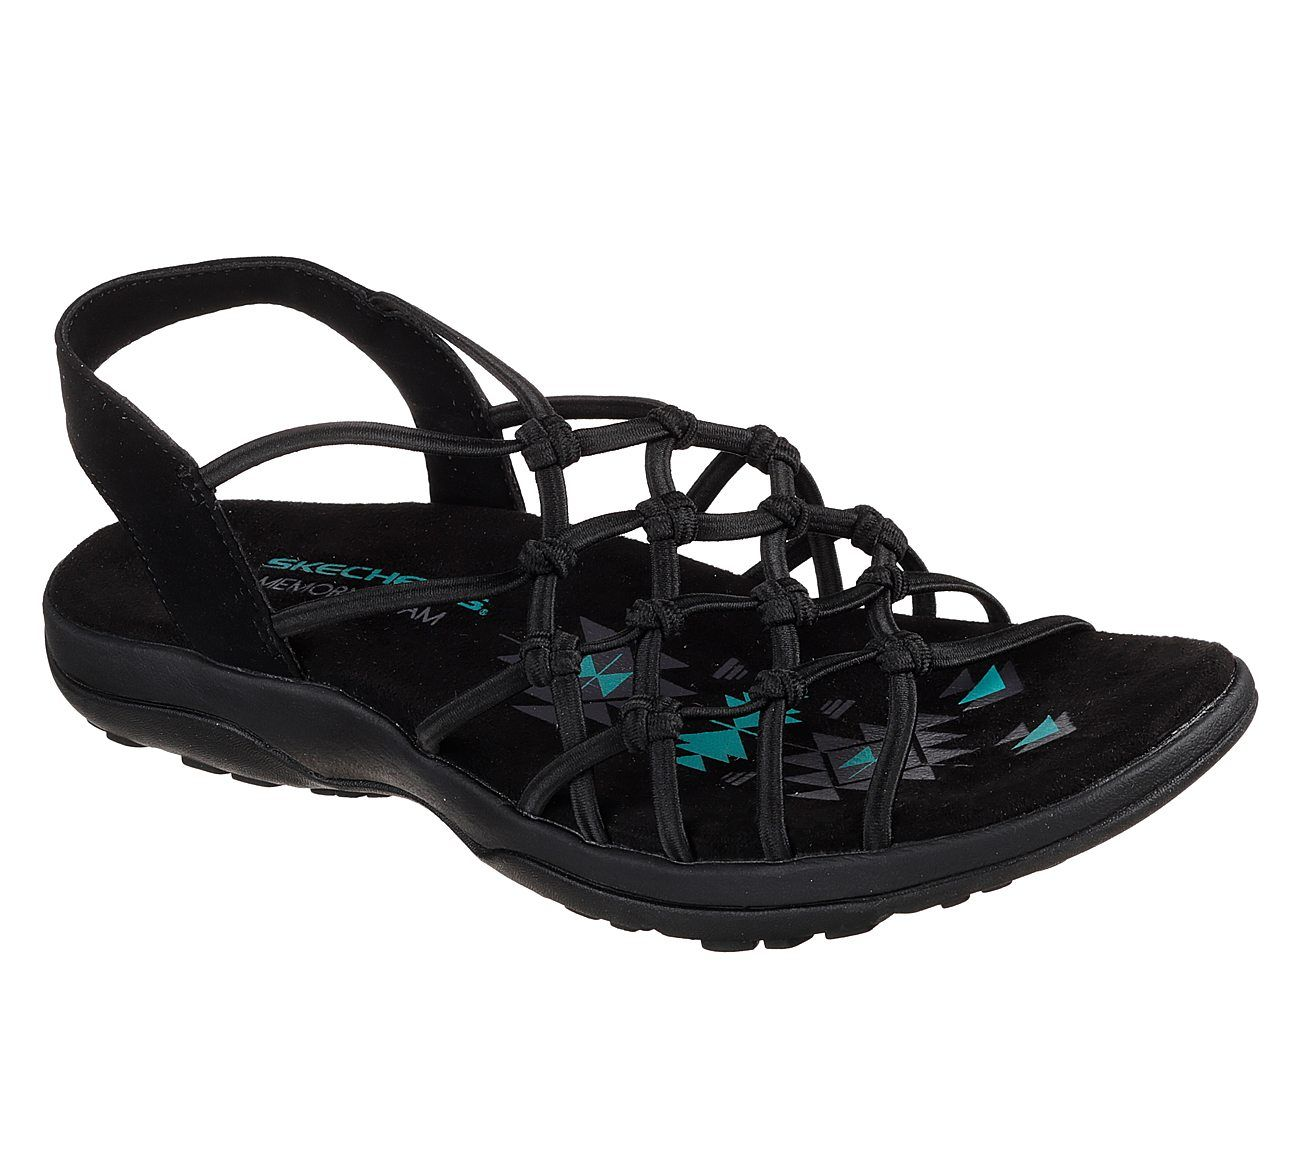 0a33ac426d1 Tie your warm weather style and comfort together perfectly with the SKECHERS  Reggae Slim - Forget Me Knot sandal. Soft stretch fabric upper in a sporty  ...